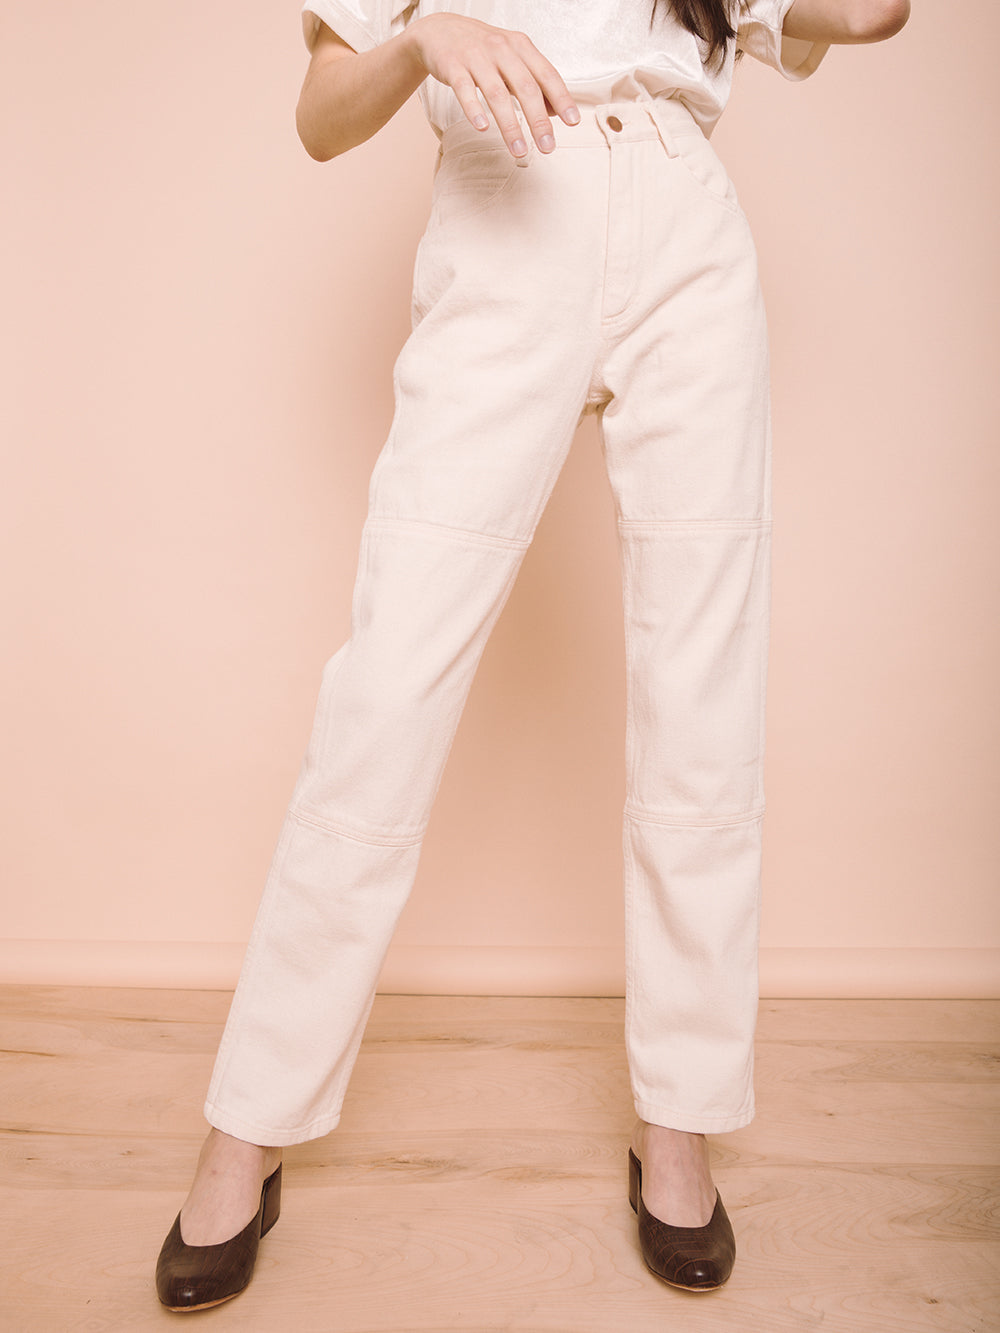 100% COTTON DENIM - NATURAL